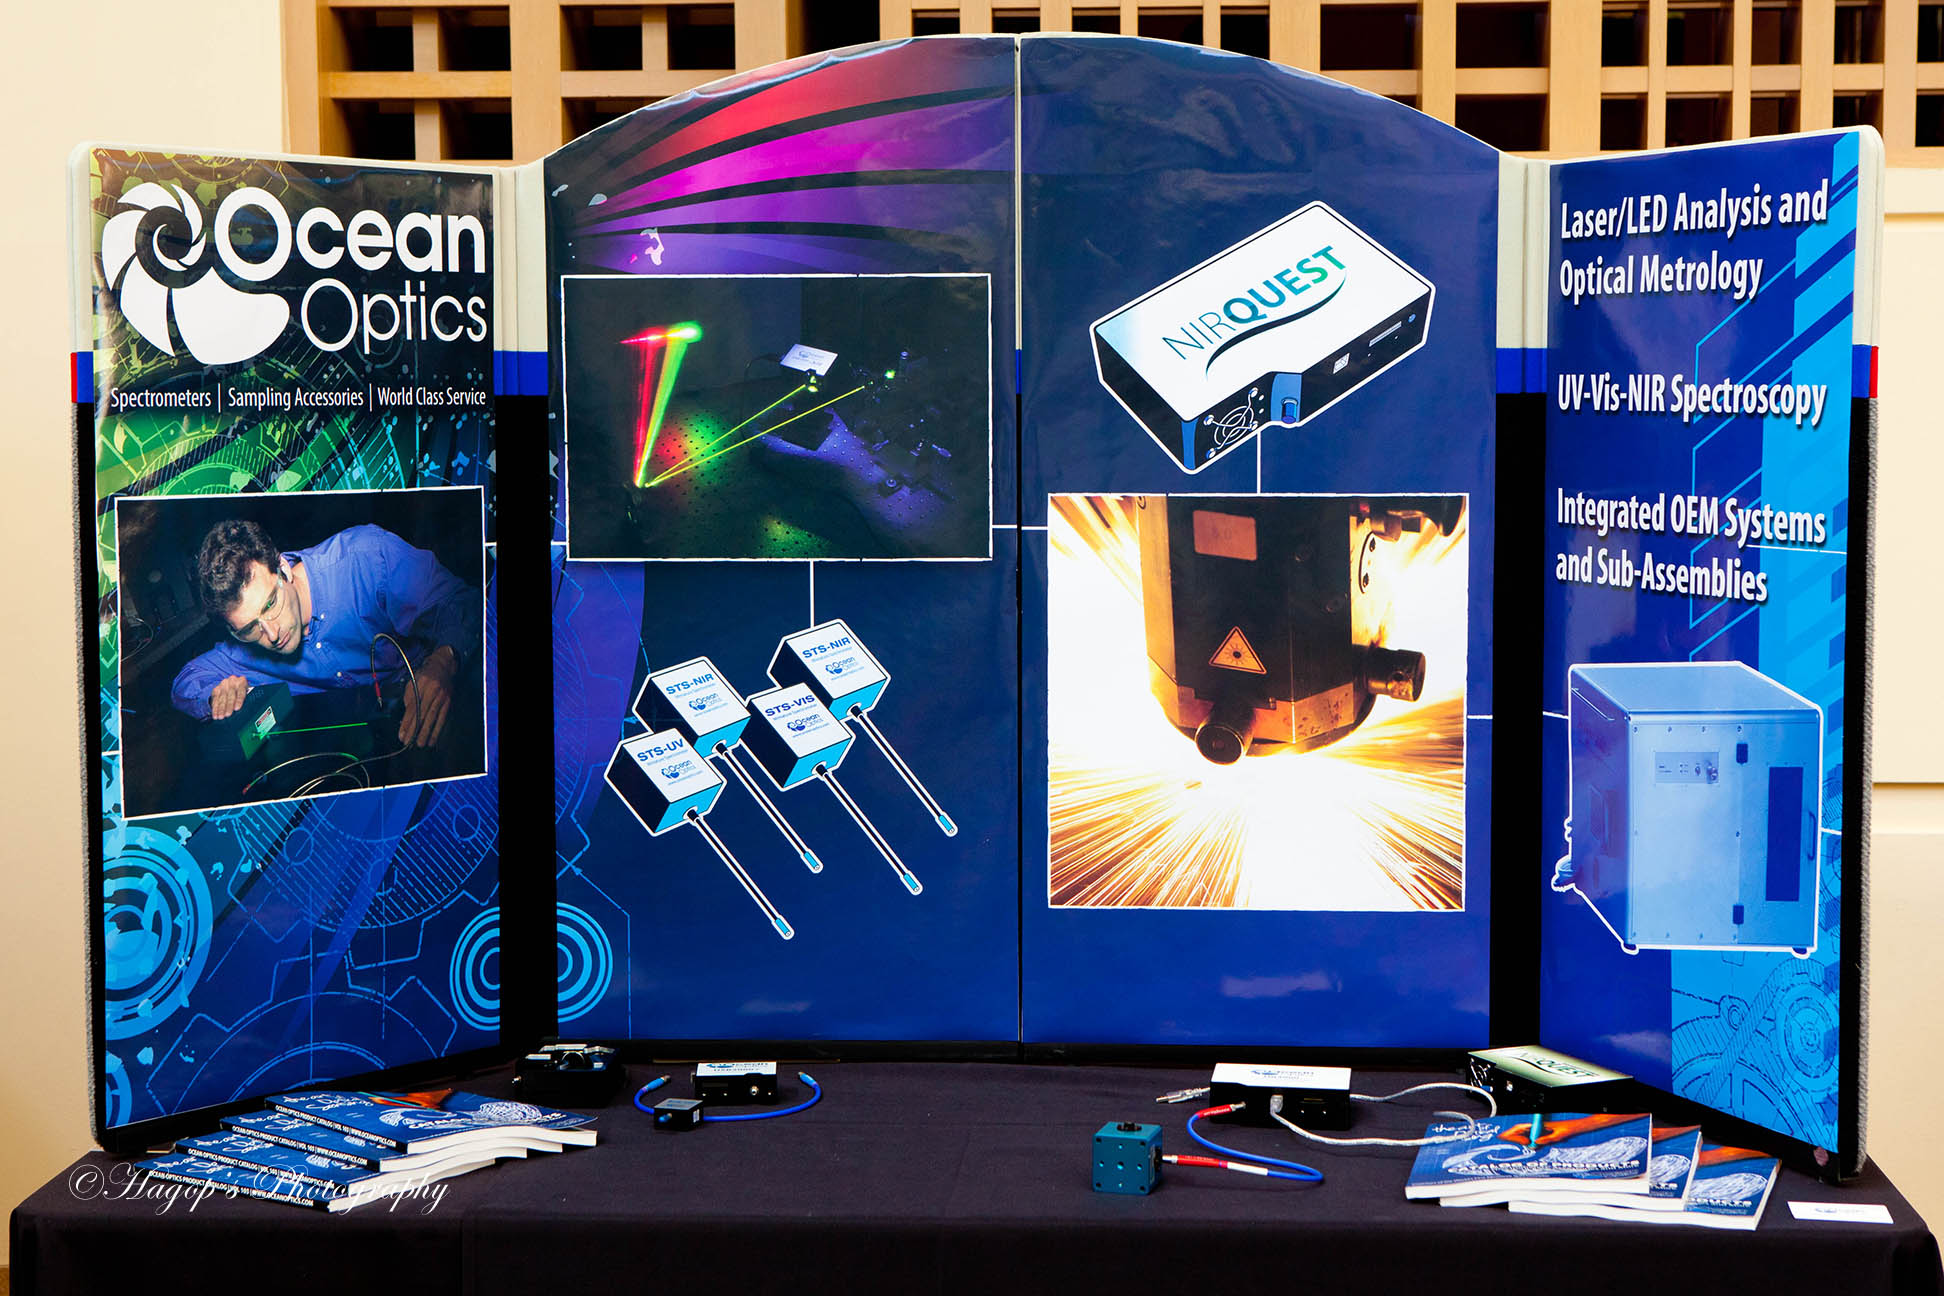 vendors display at the conference